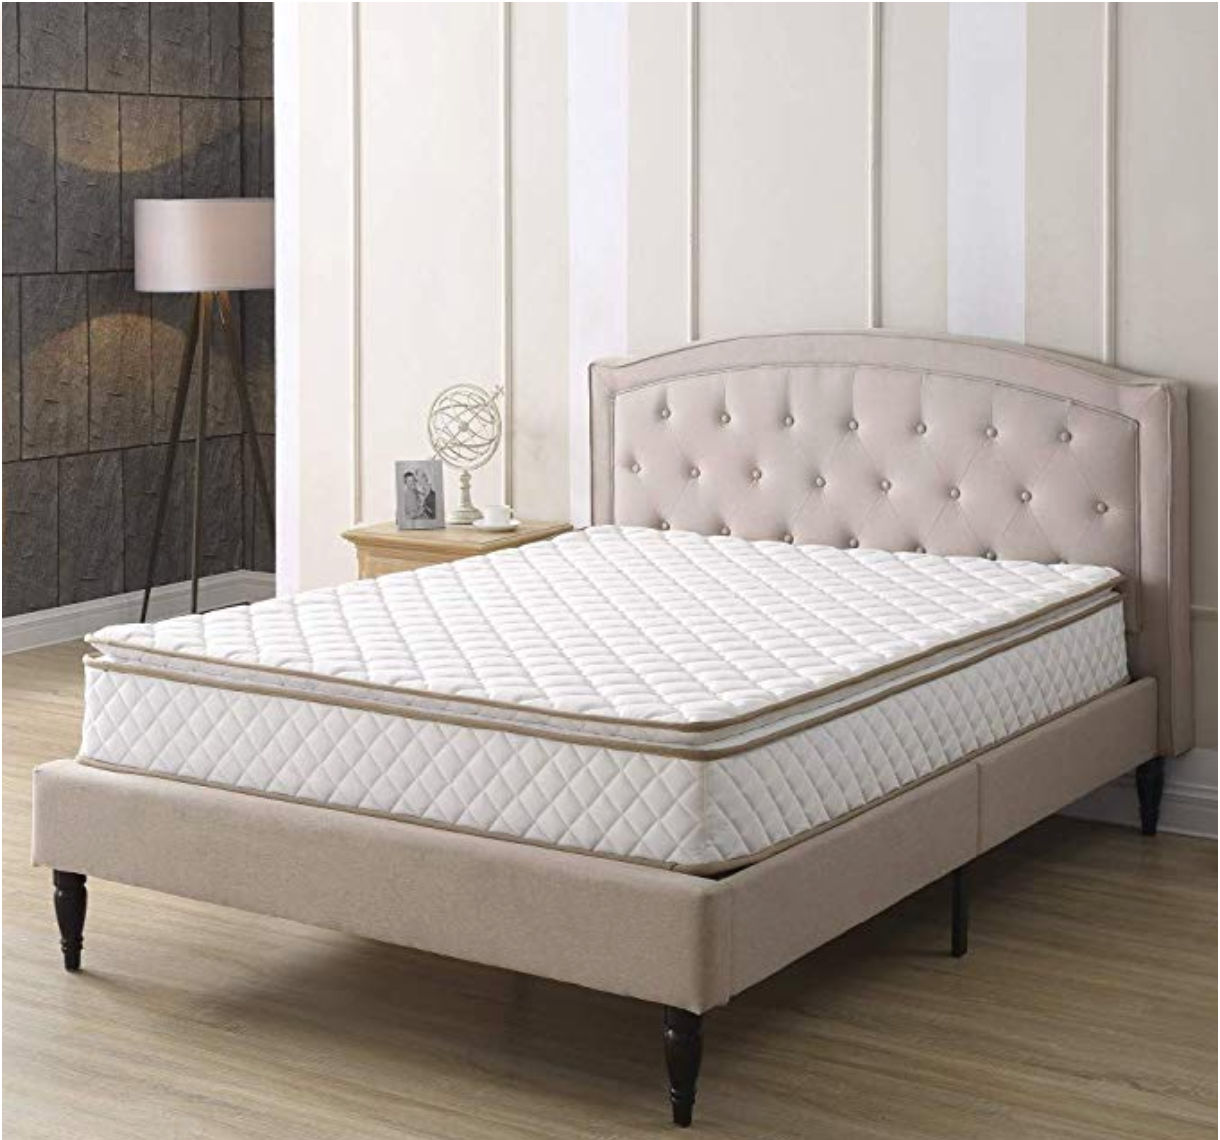 You can Make Monthly Payments on Mattresses on Amazon – No Interest No Credit Check Needed!